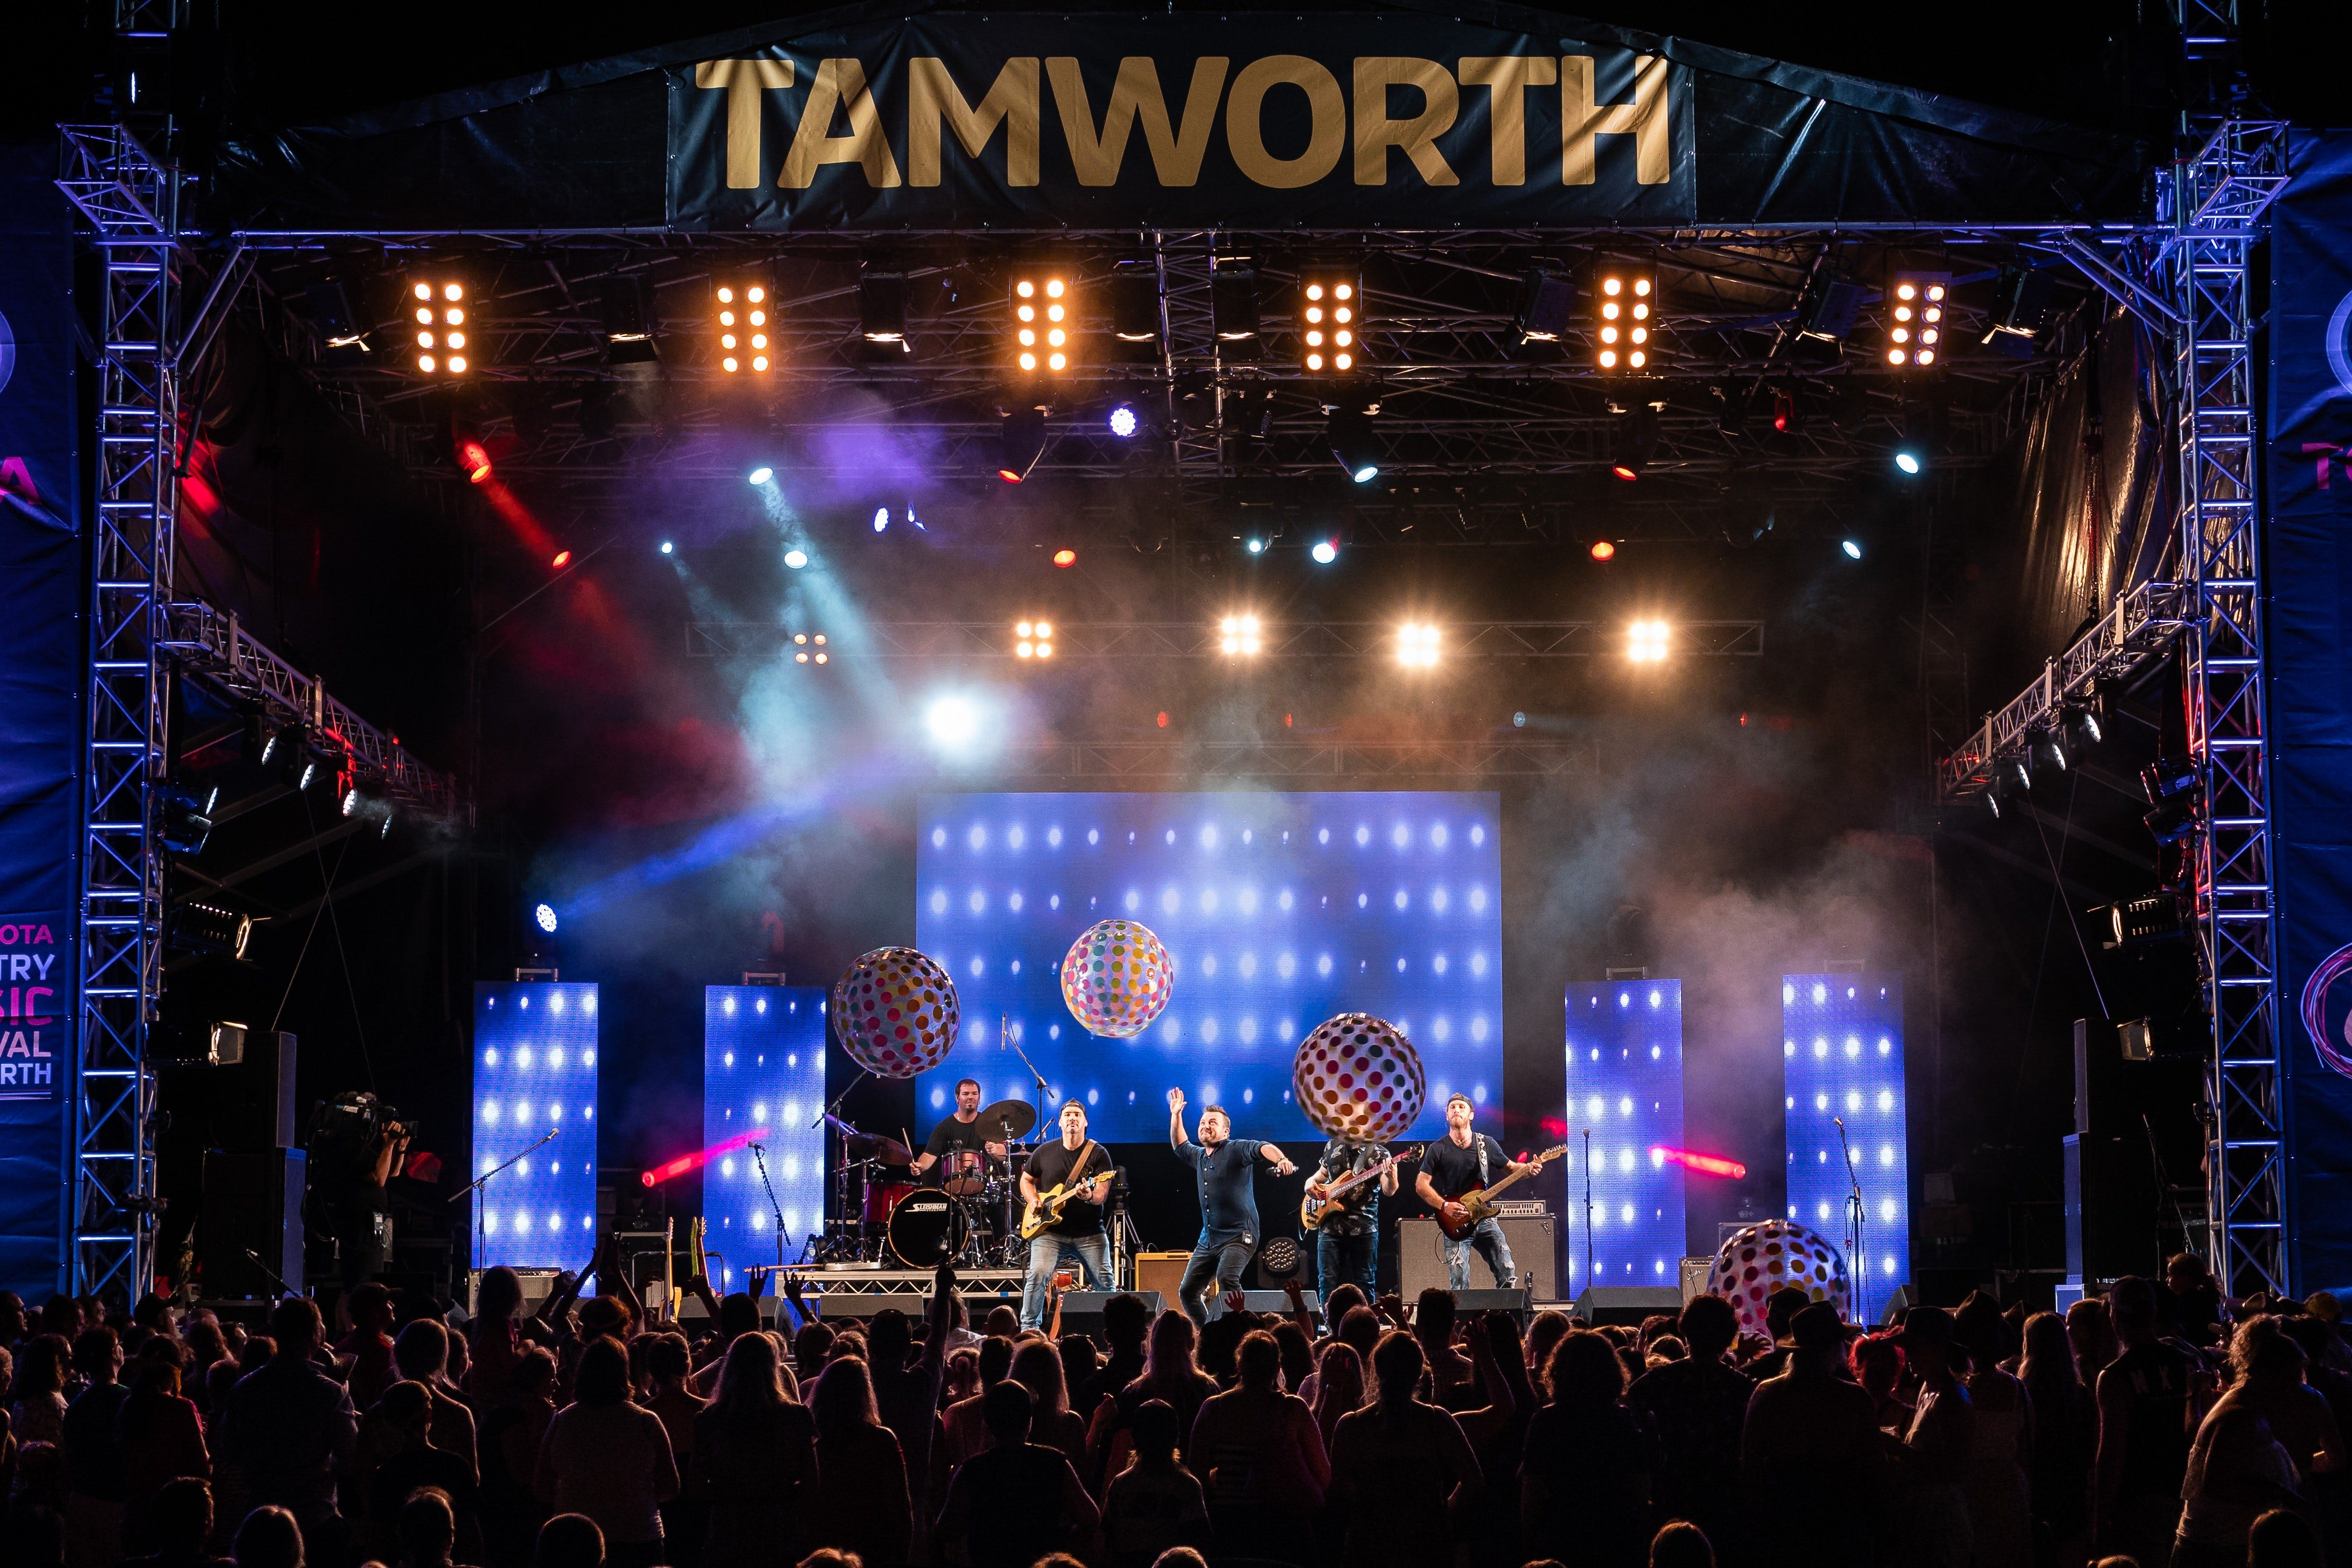 Toyota Country Music Festival Tamworth - Tourism Bookings